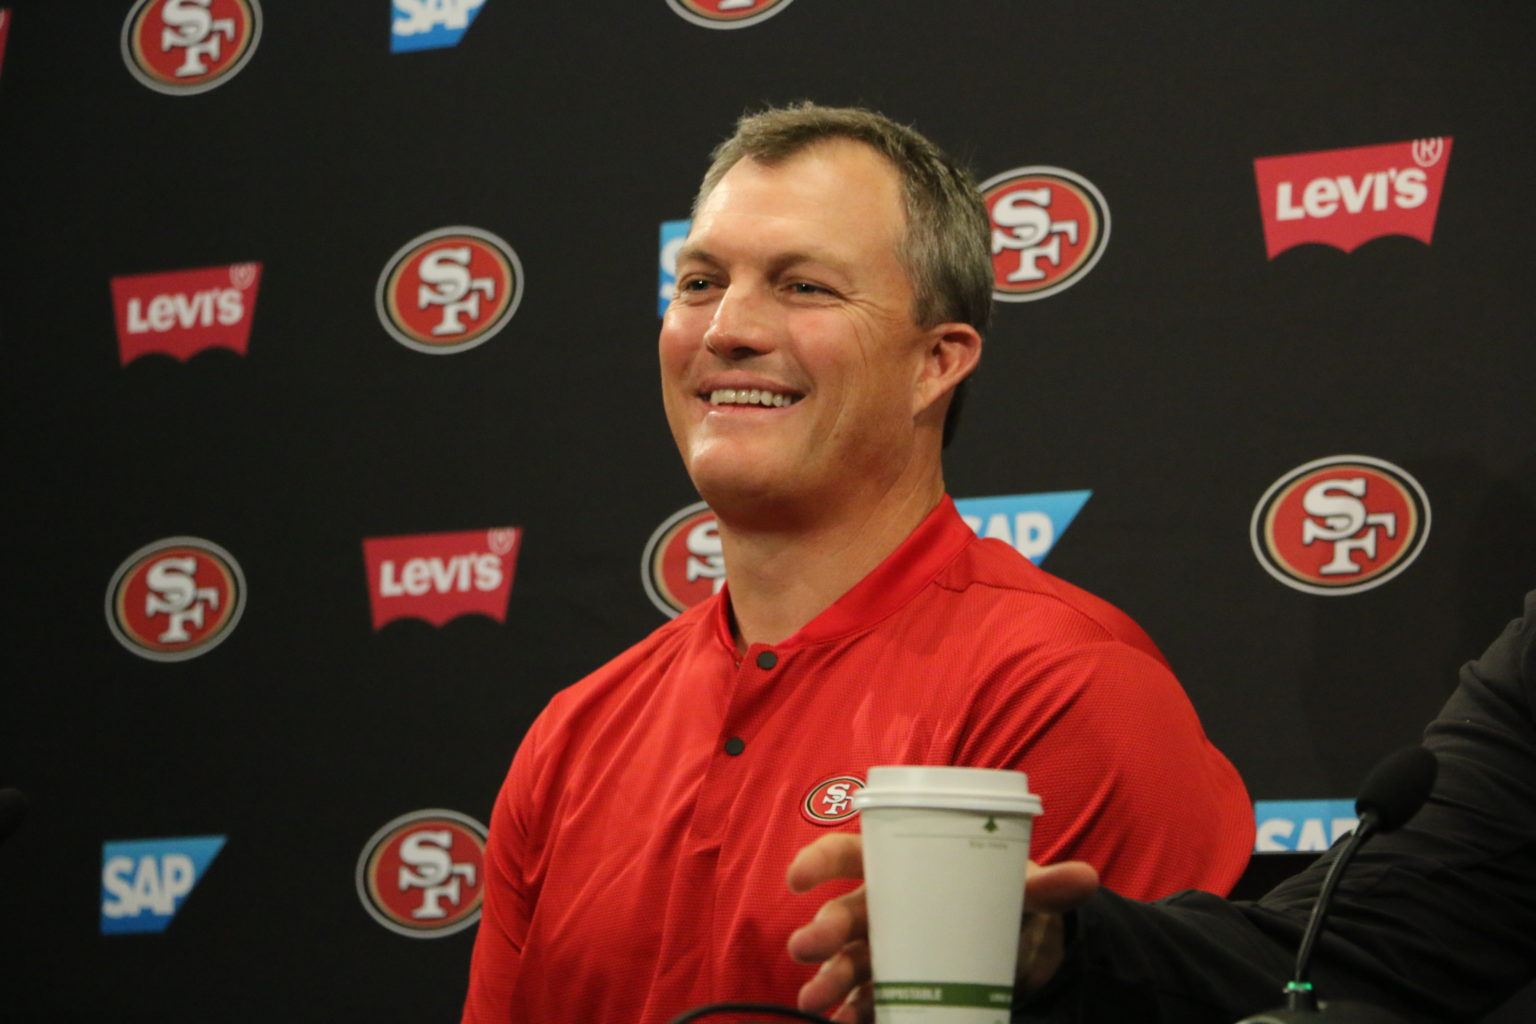 San Francisco 49ers general manager John Lynch addresses the media at Levi's Stadium on July 25, 2018. (Ryan Gorcey / S.F. Examiner)